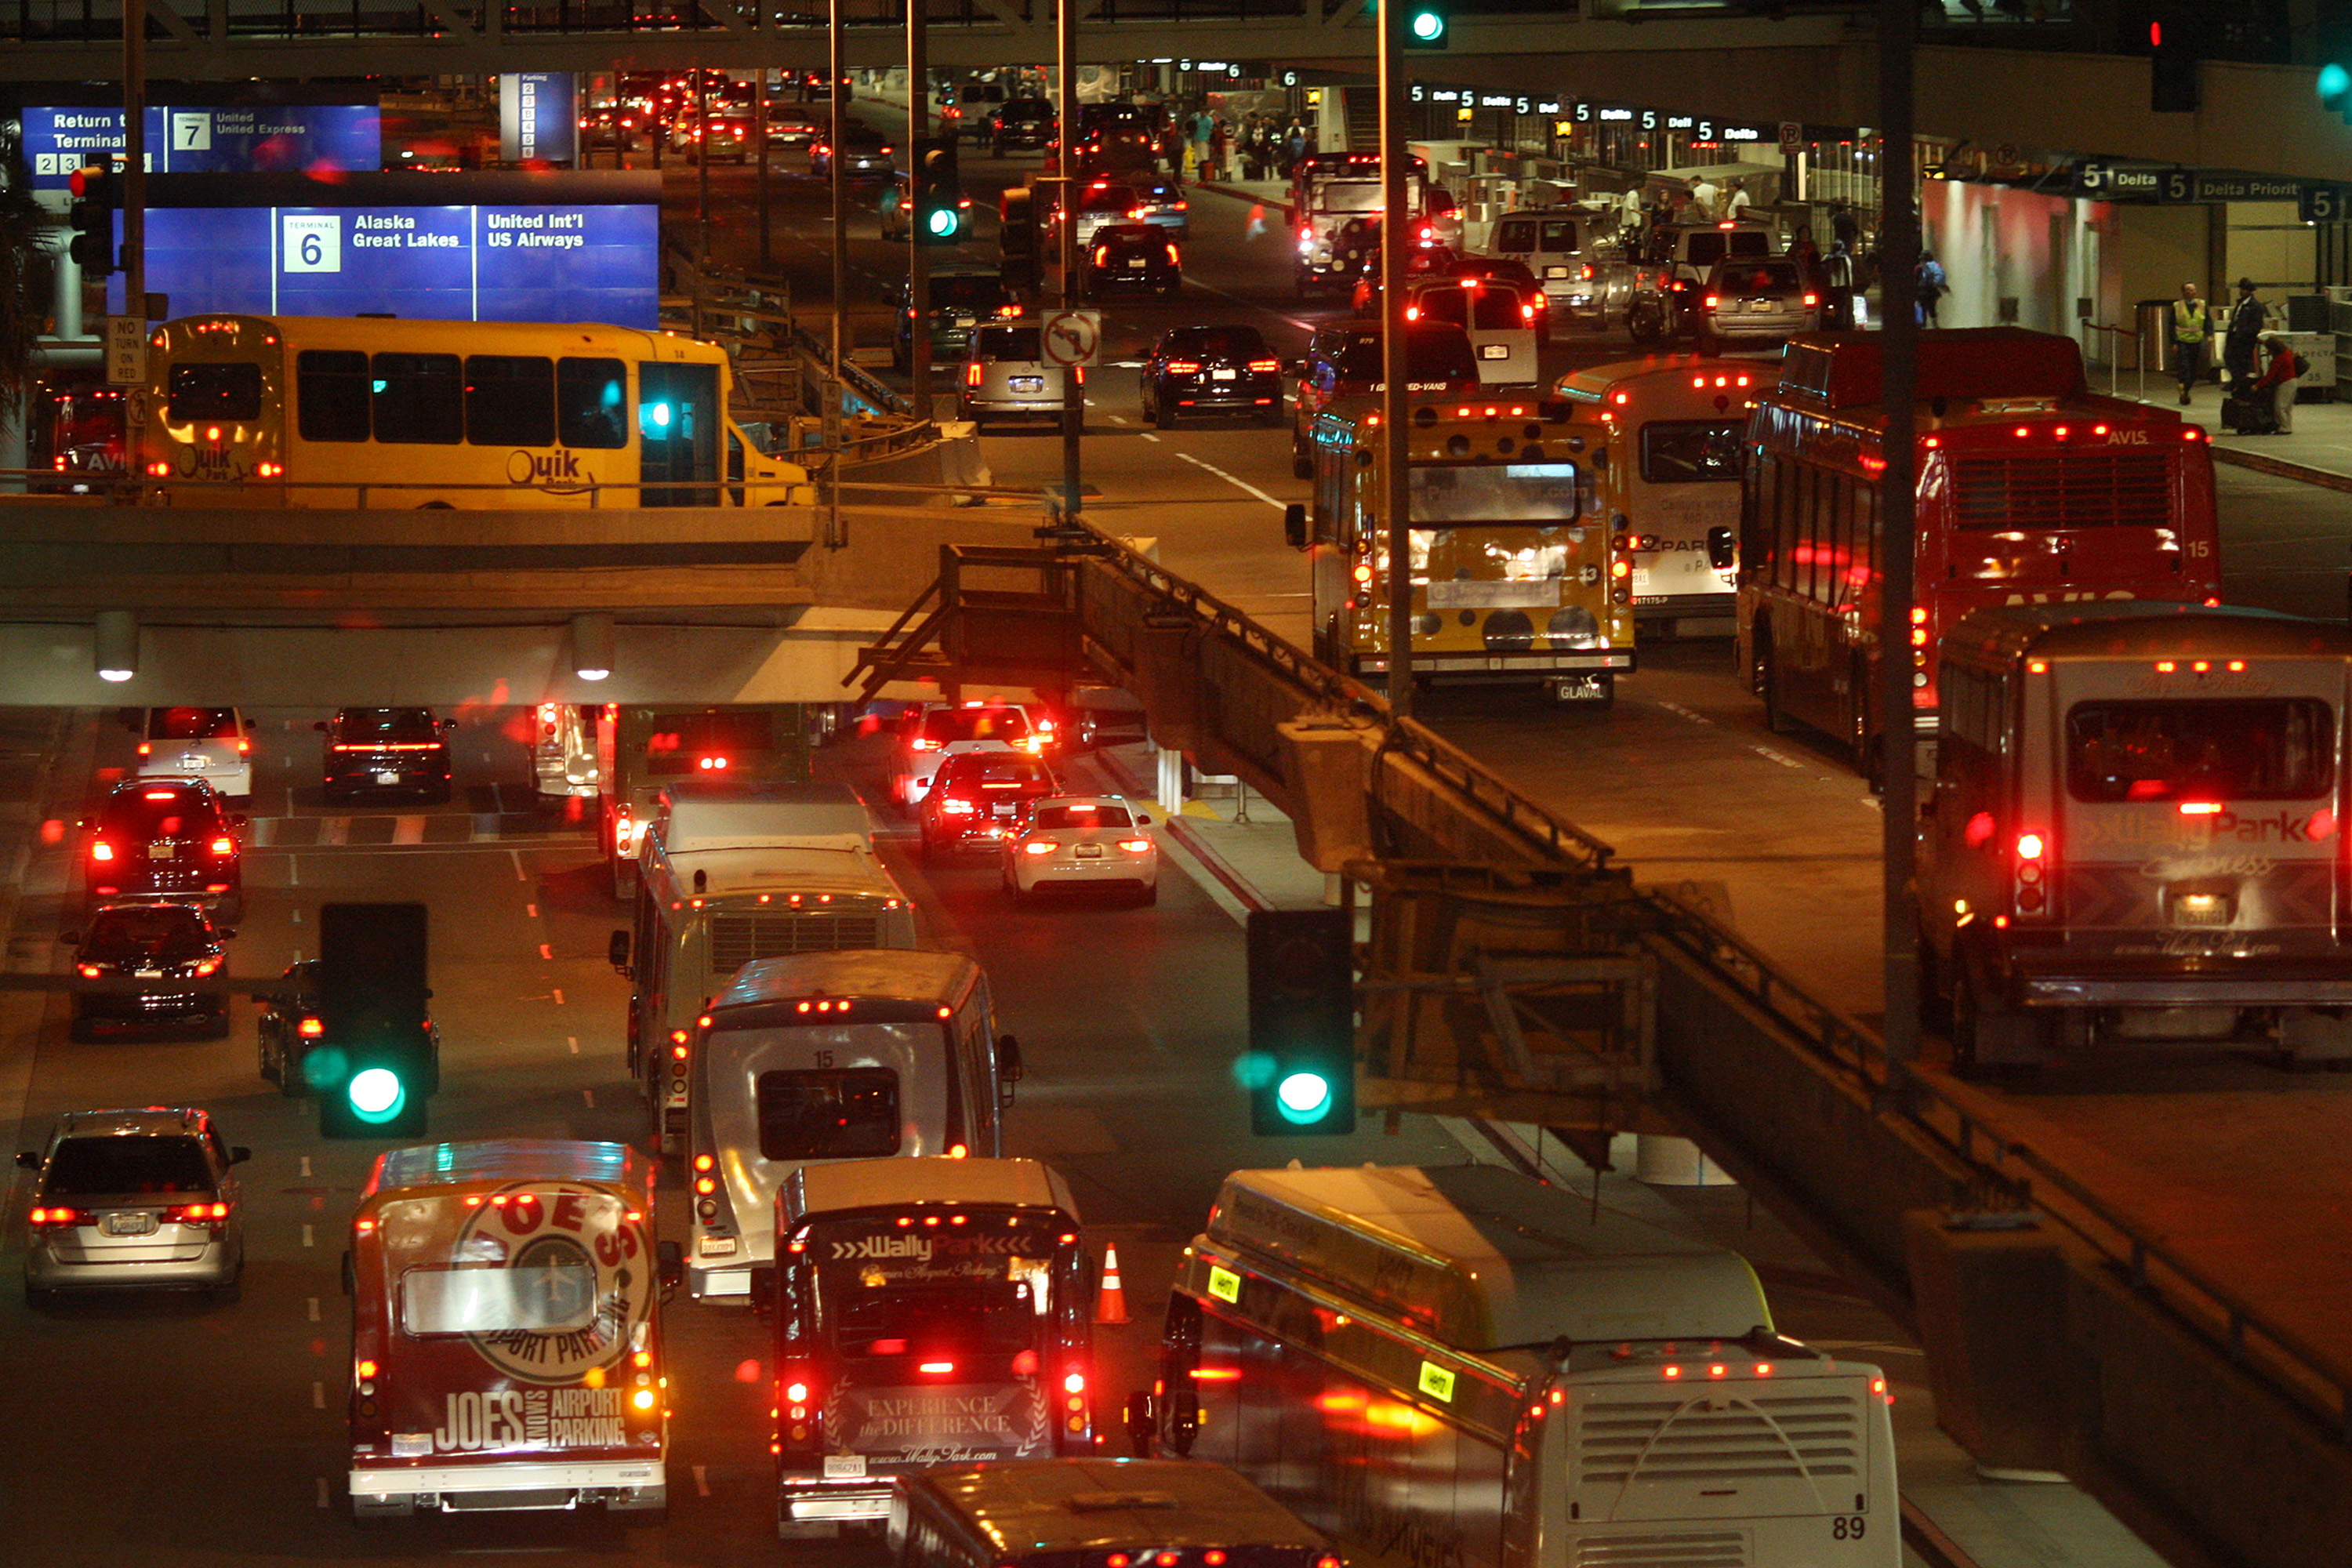 Traffic fills arrival and departure lanes at LAX as people travel to Thanksgiving holiday destinations on November 26, 2014 in Los Angeles, California.